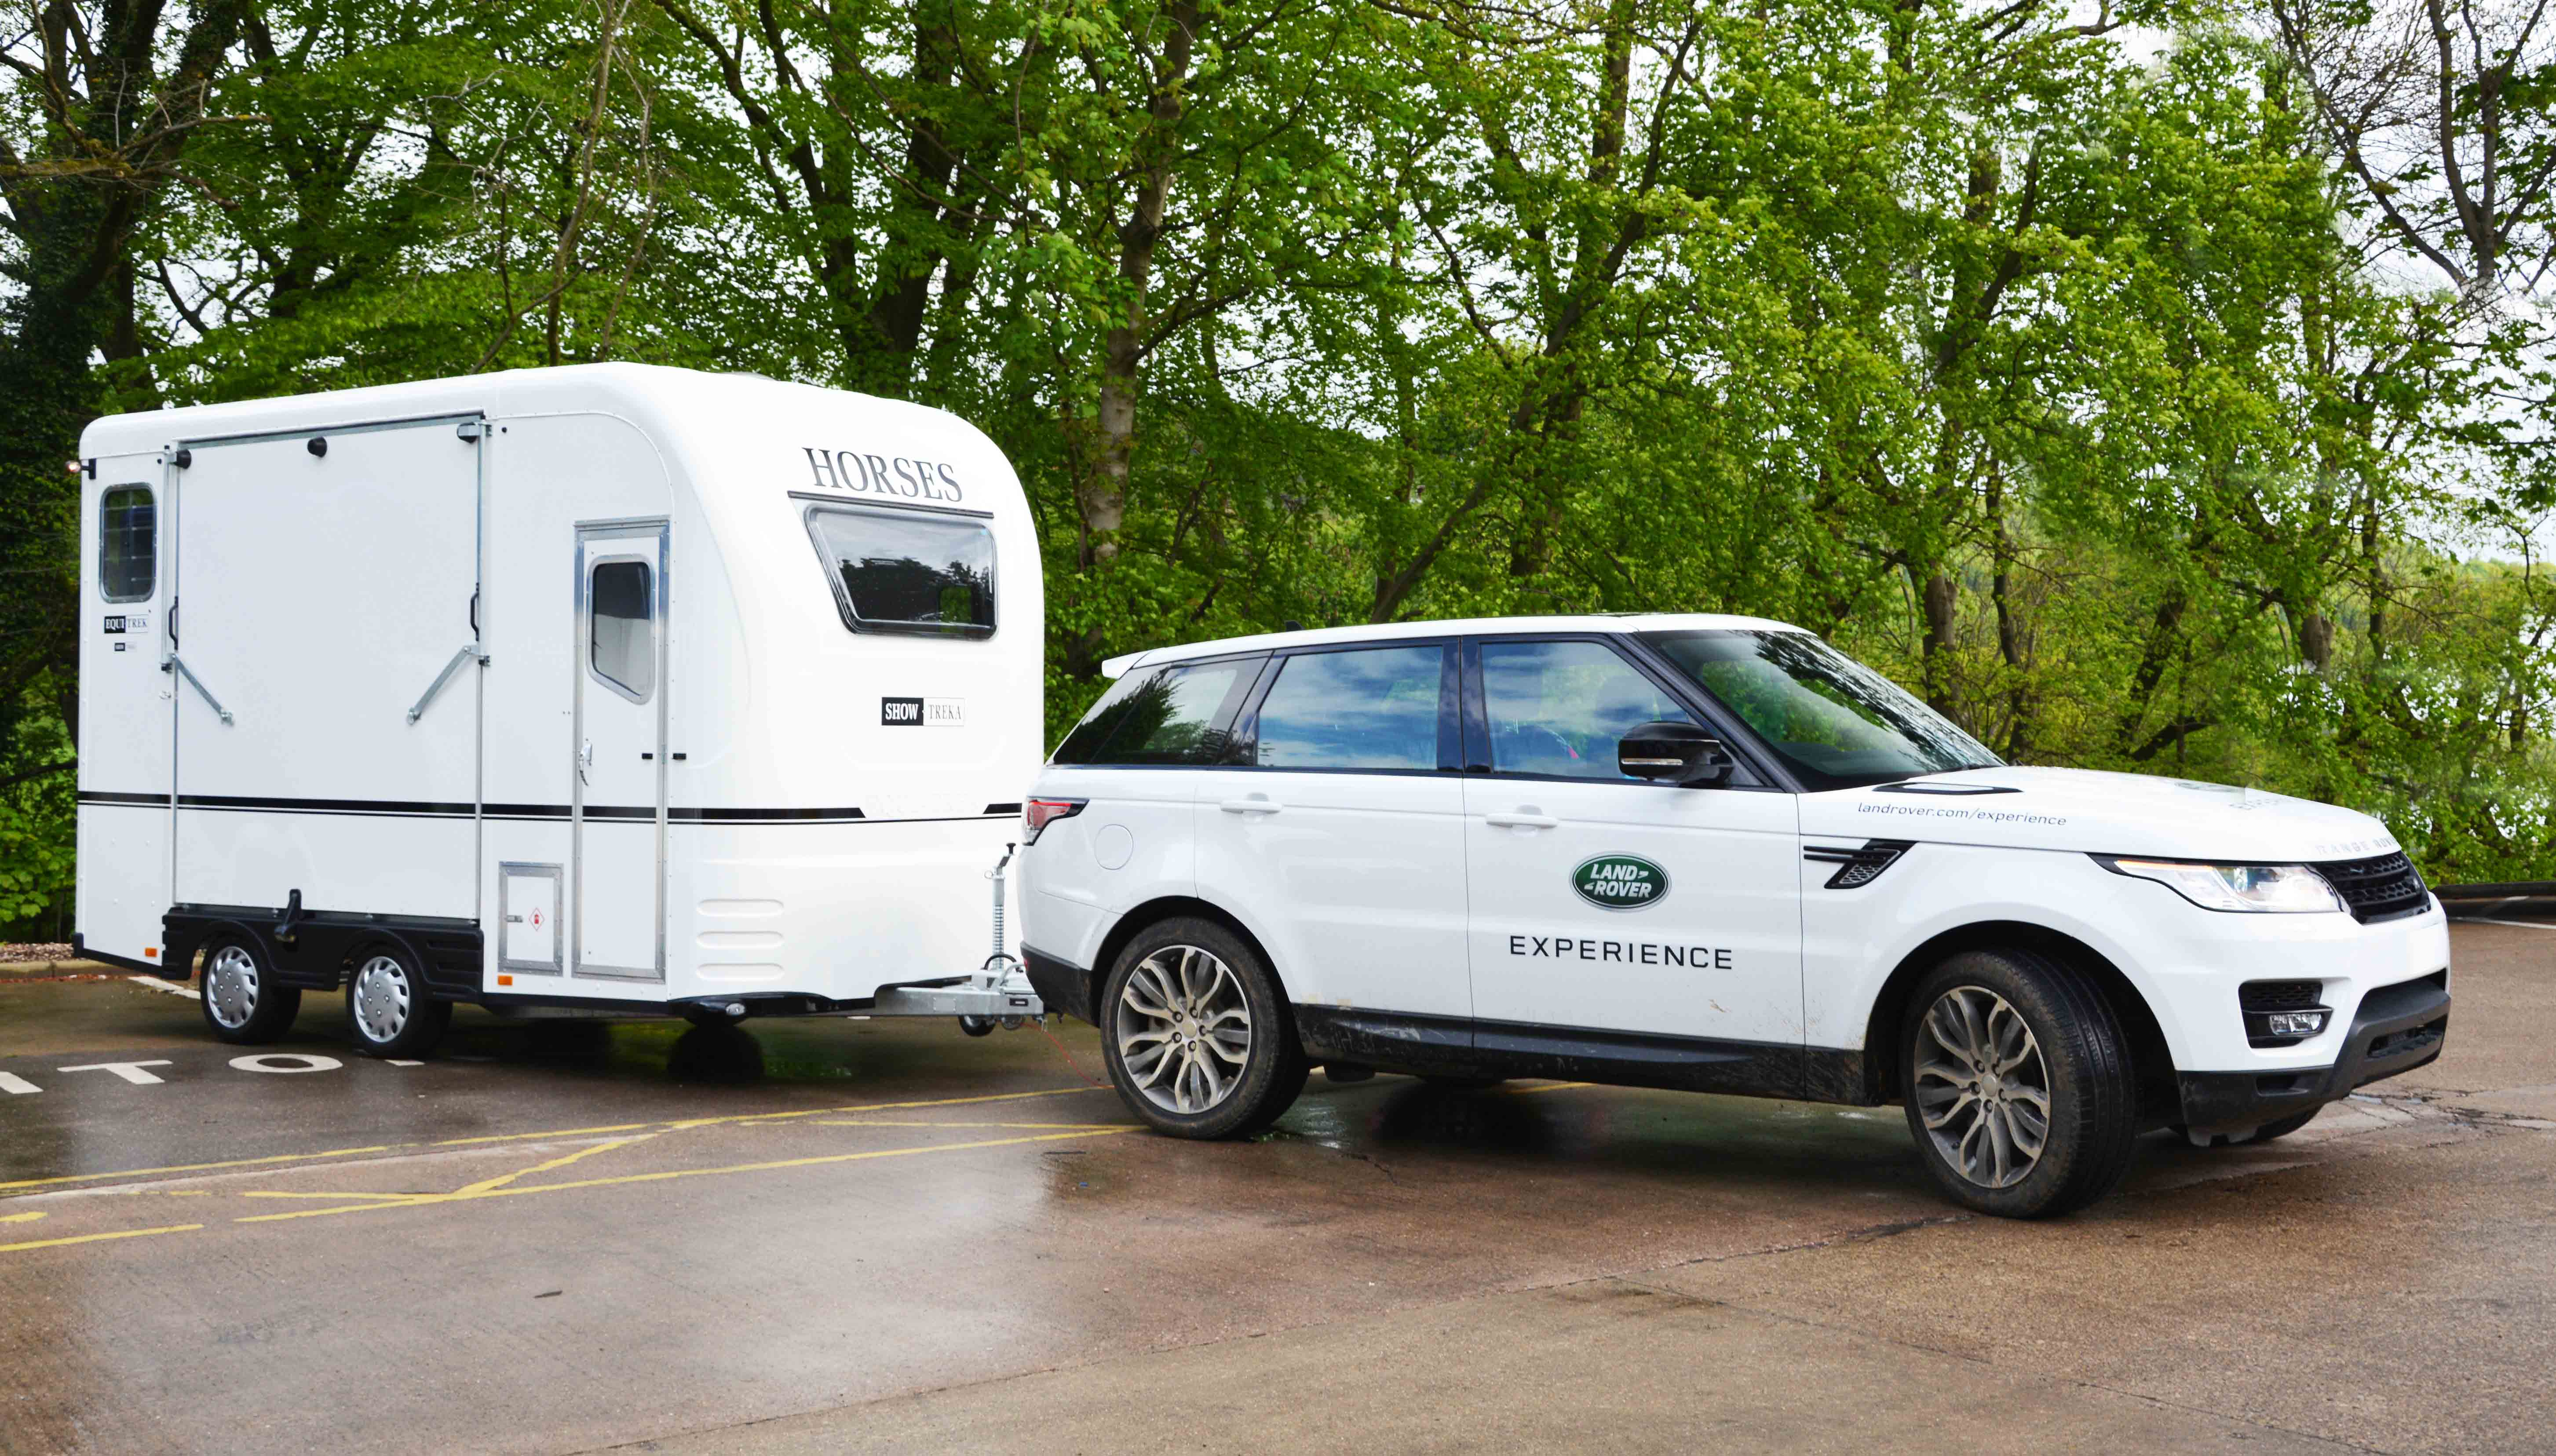 Equi-Trek and Land Rover Experience